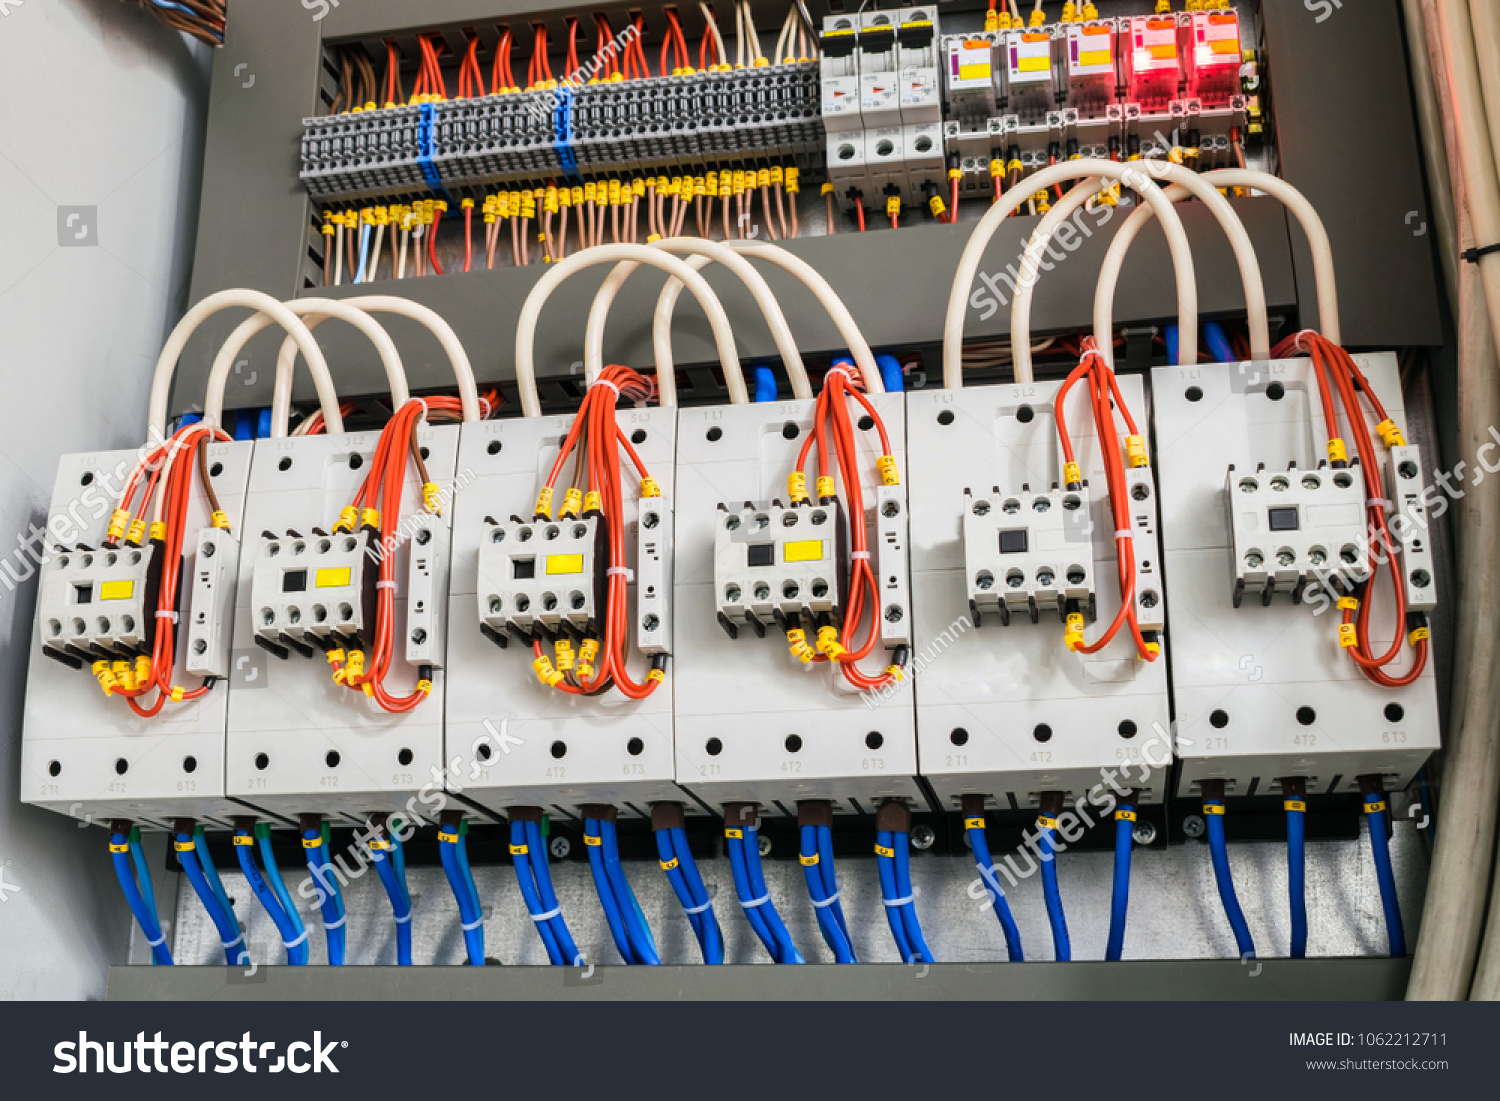 hight resolution of a modern open fuse box contains a lot of automata connectors relays and